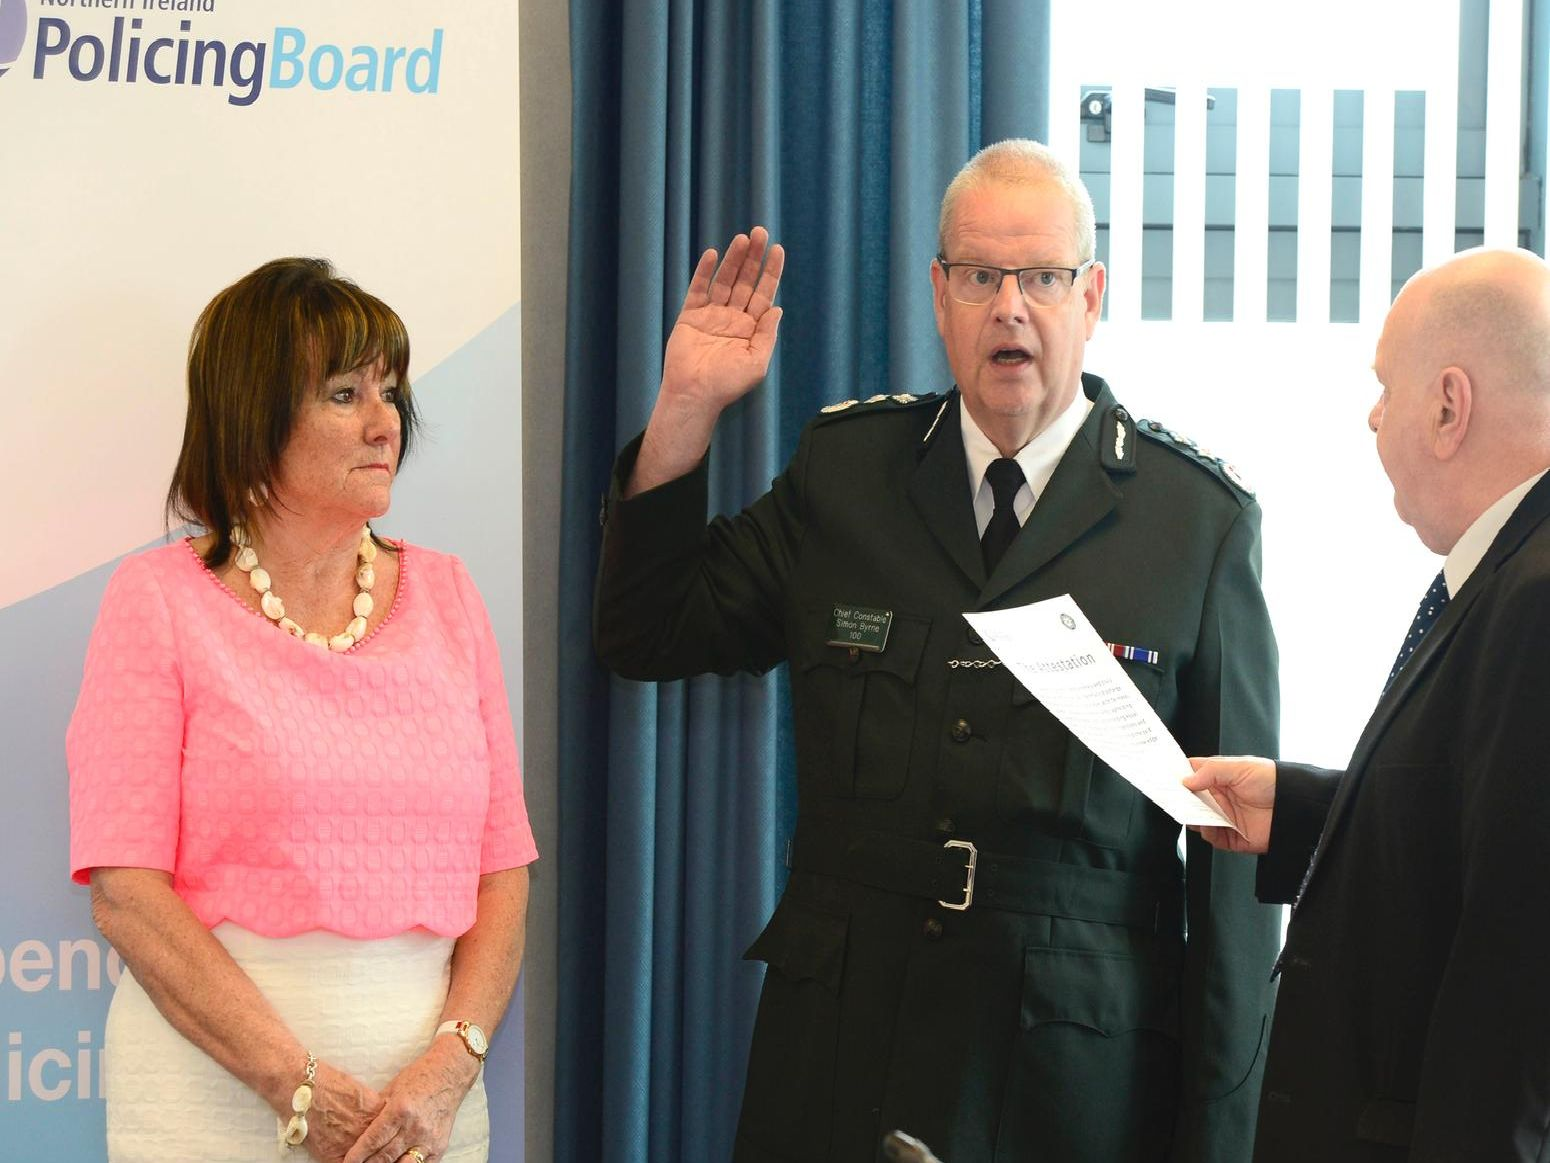 Simon Byrne has officially taken over as the chief constable of the Police Service of Northern Ireland (PSNI) on a five-year contract. Included are Policing Board Chair Anne Connolly and Prof David A Flynn Justice of the Peace.